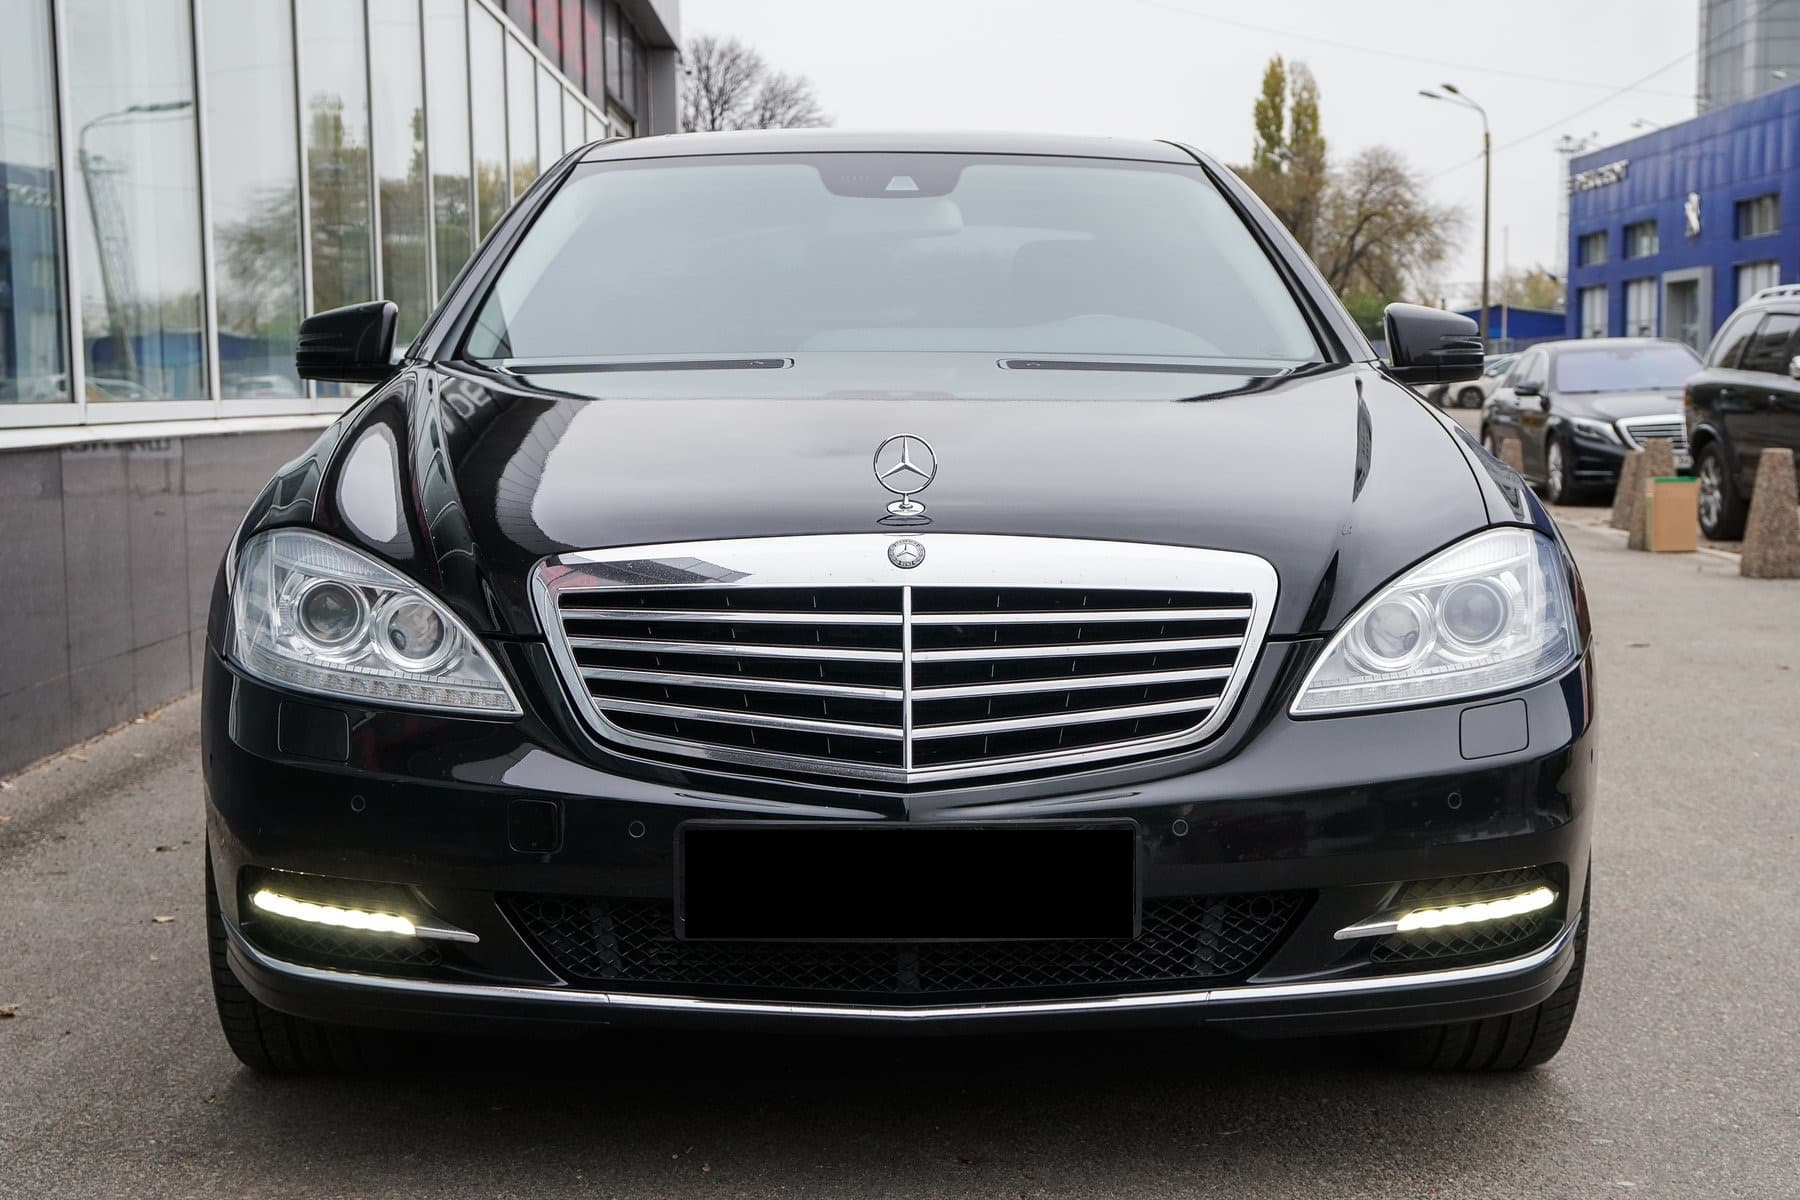 Mercedes-Benz S550 W221 4-matic - фото 2